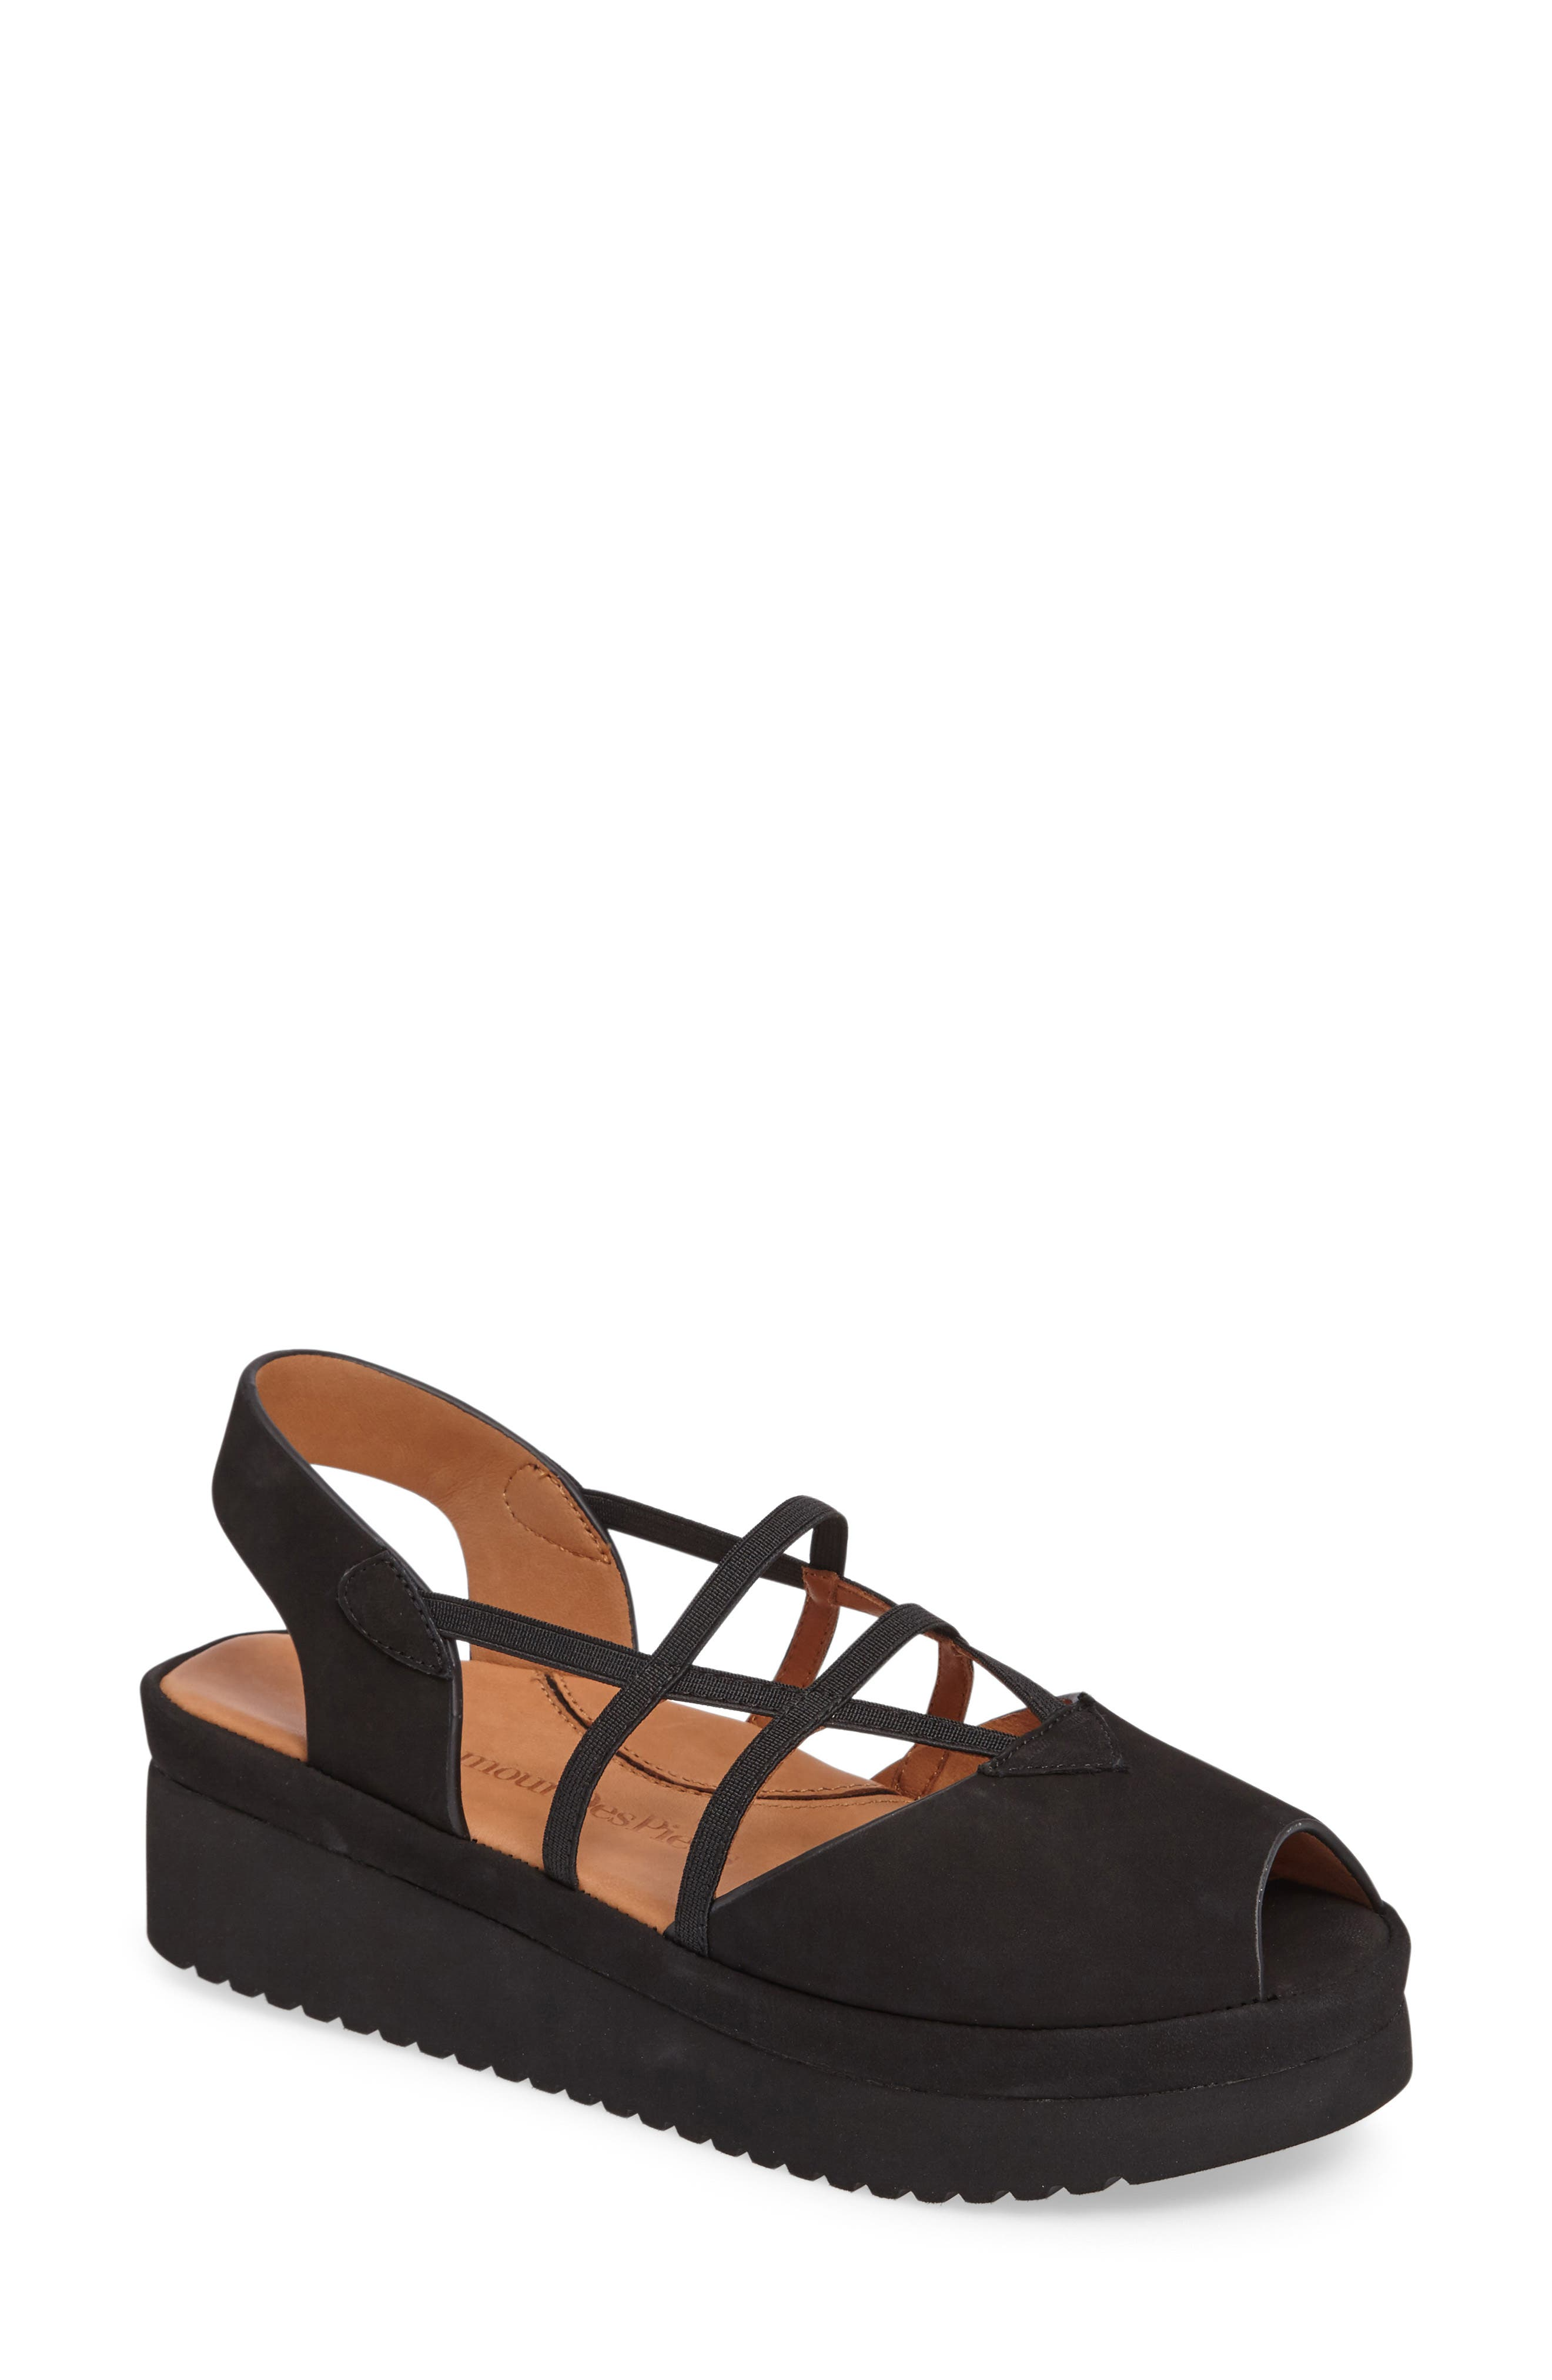 L'AMOUR DES PIEDS, Adelais Platform Wedge Sandal, Main thumbnail 1, color, BLACK NUBUCK LEATHER